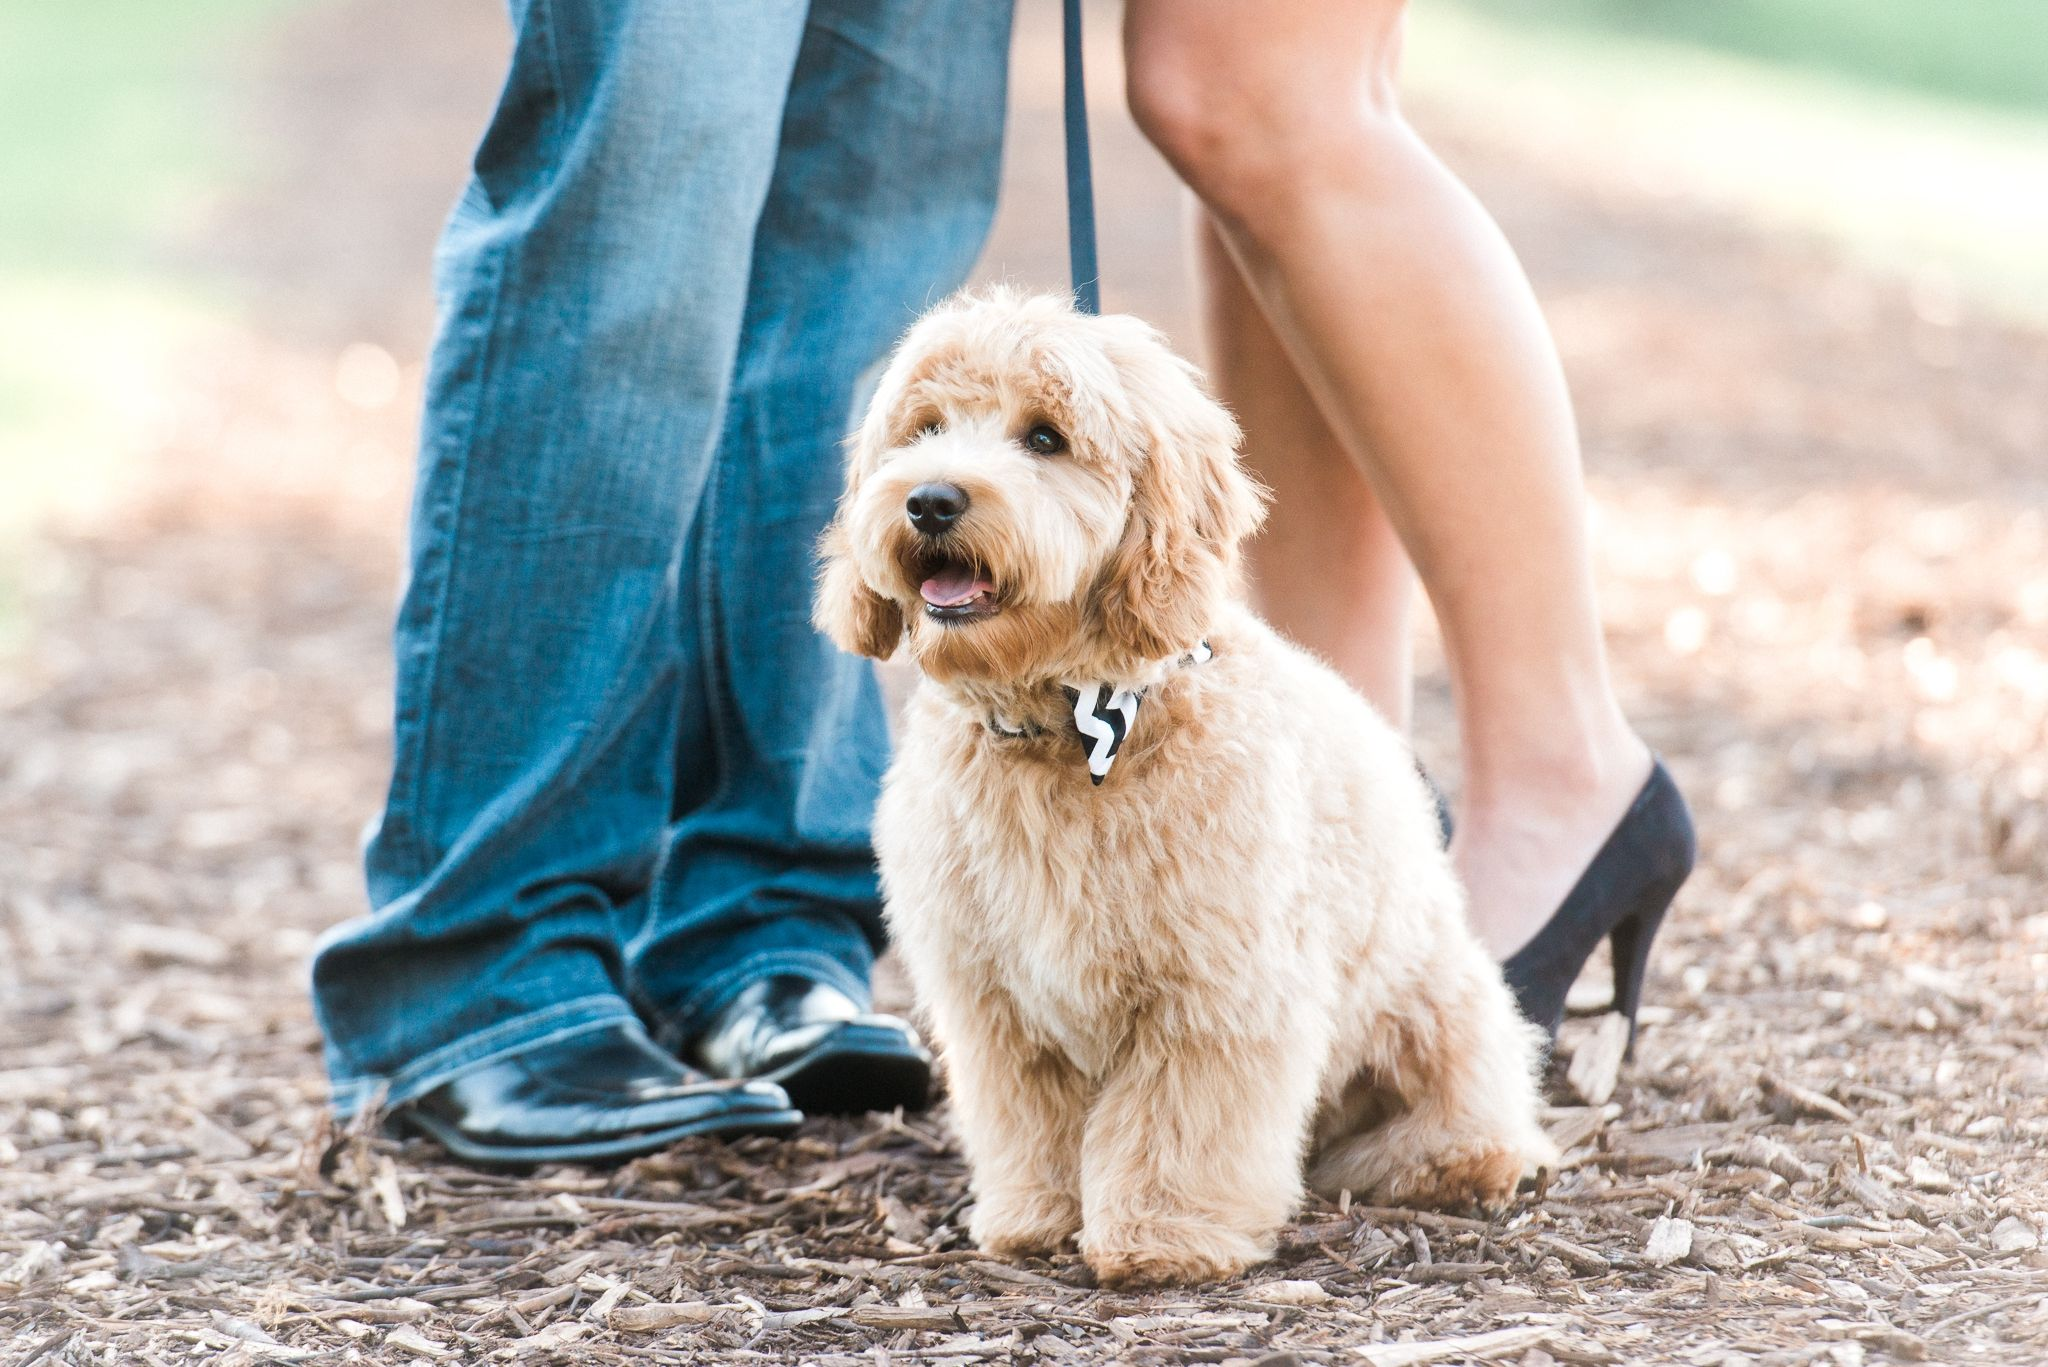 8 TIPS FOR INCLUDING YOUR DOG IN YOUR ENGAGEMENT PHOTOS